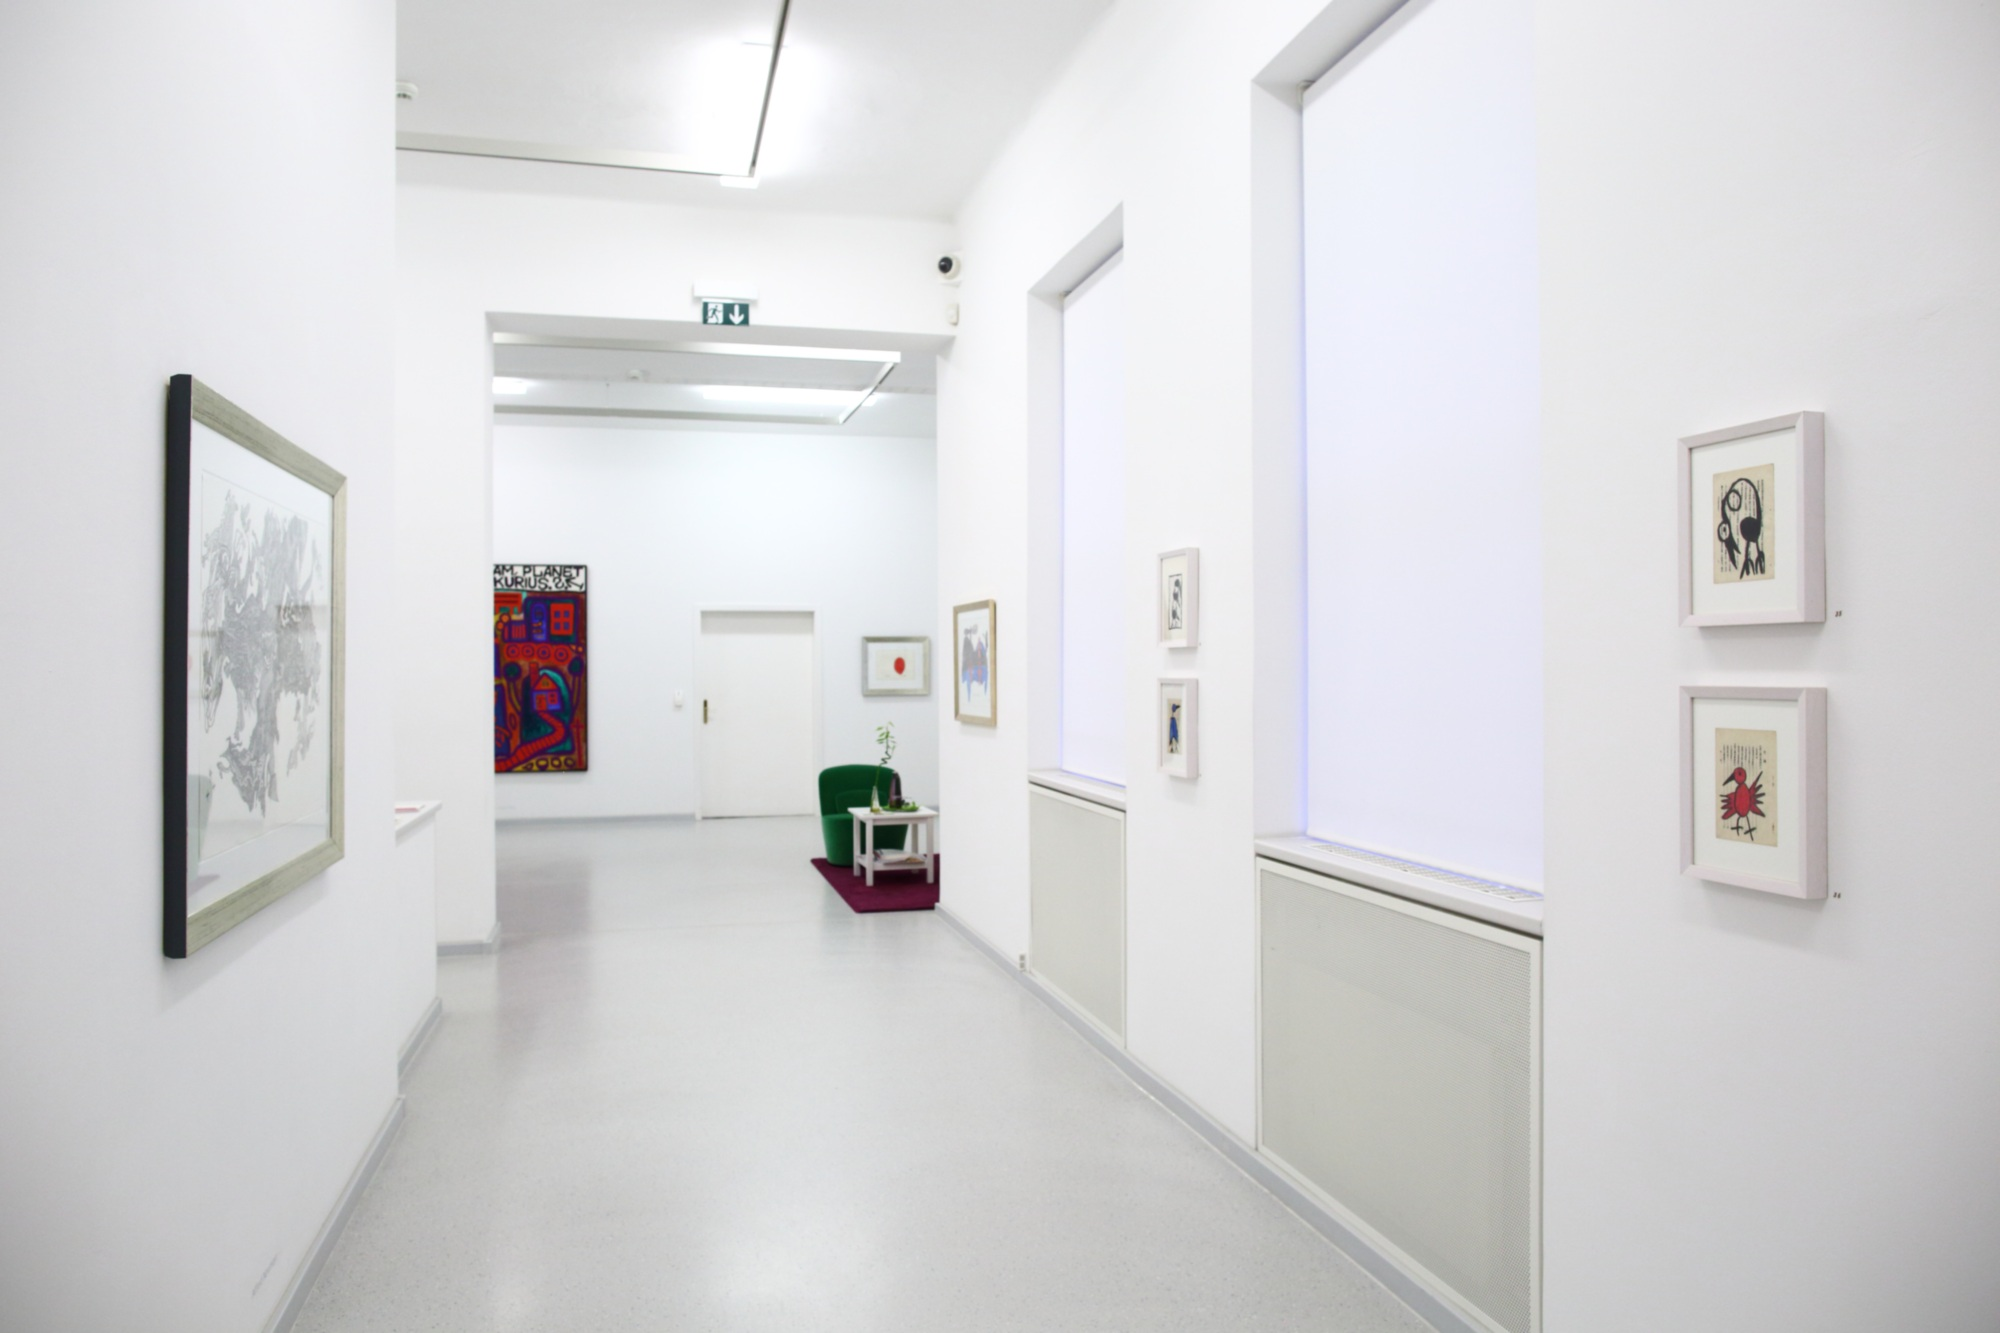 galerie gugging (c) Ludwig Schedl